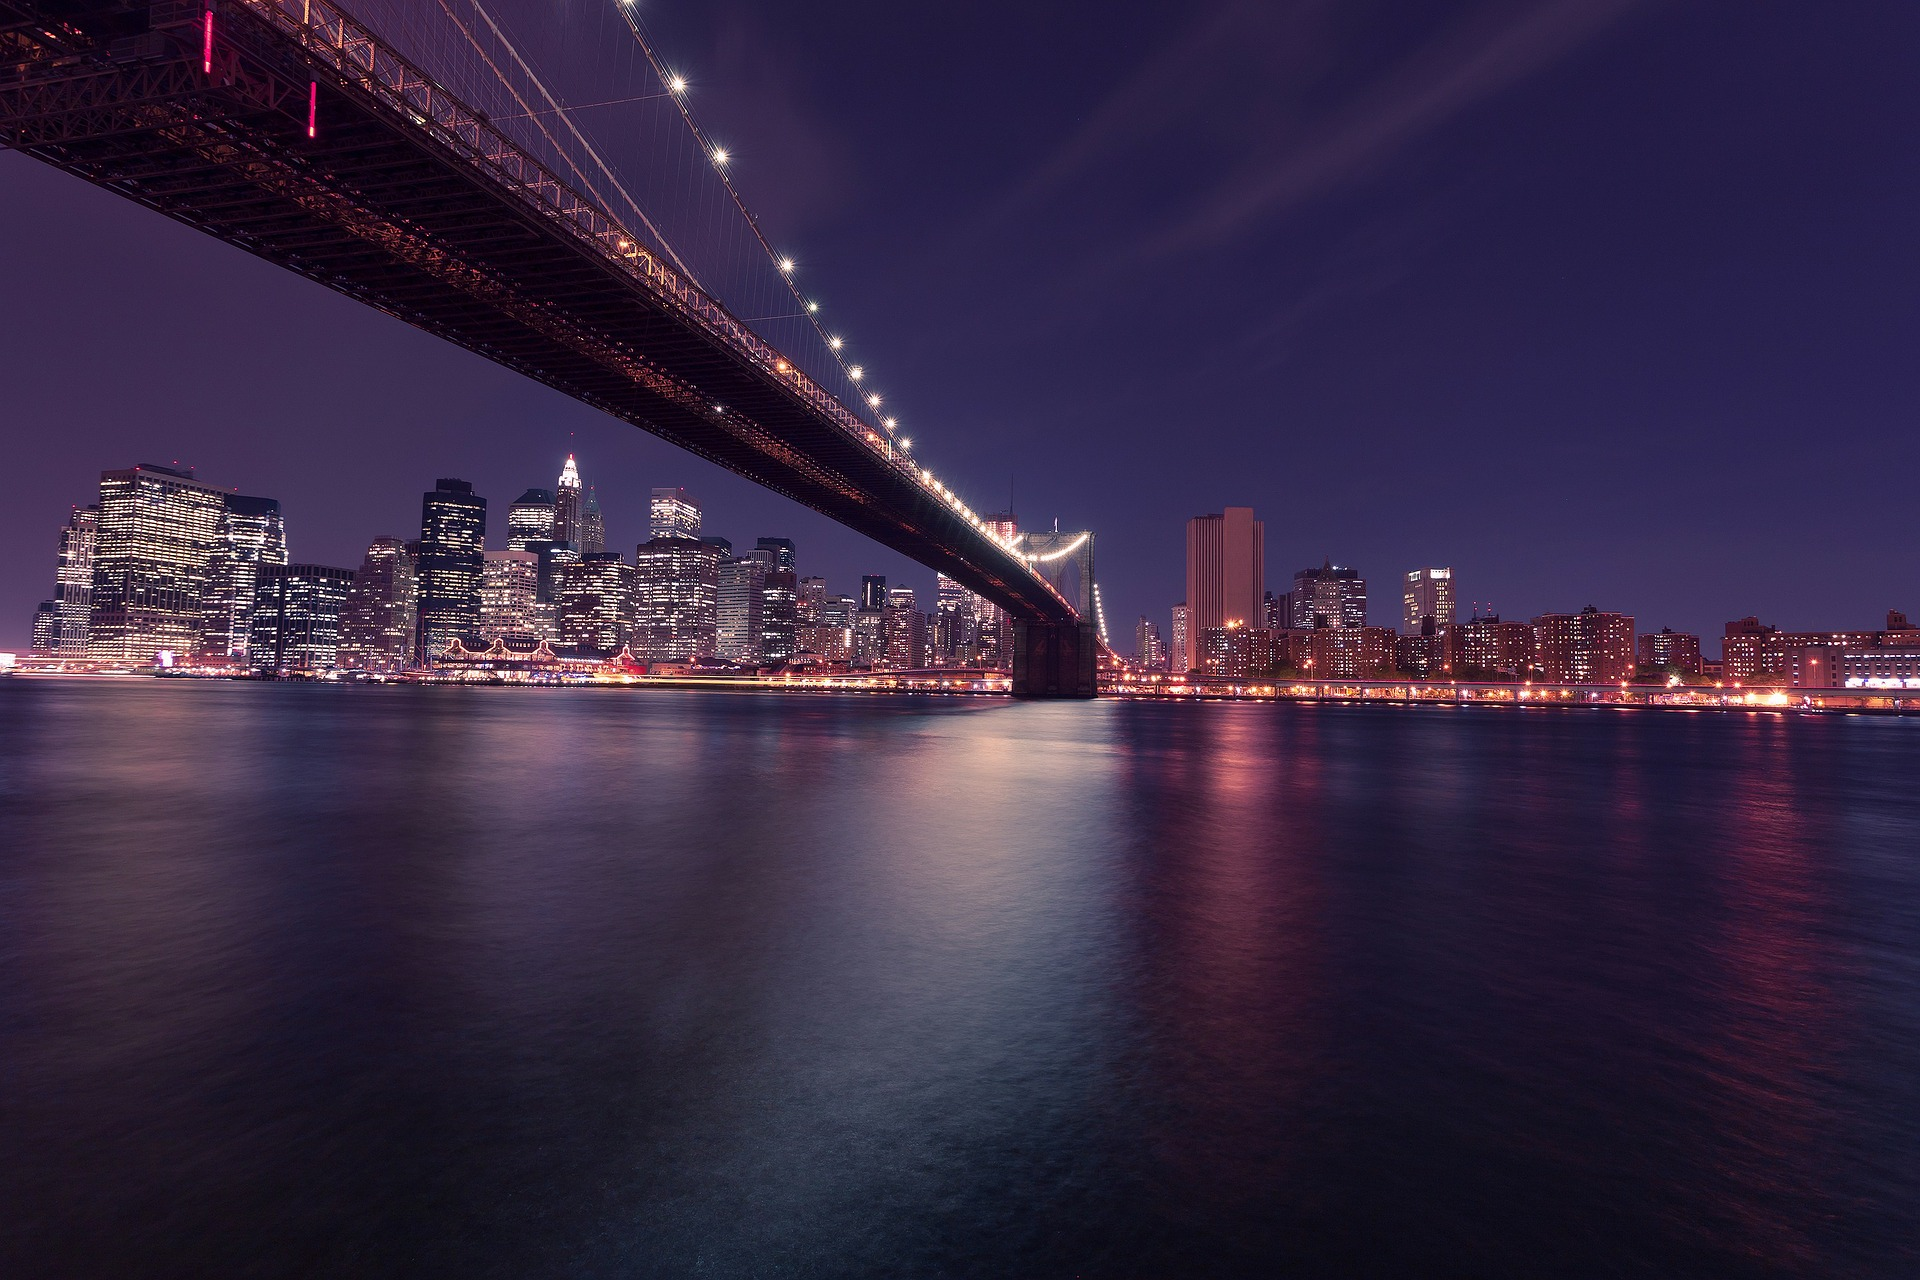 Brooklyn Bridge, New York City at night